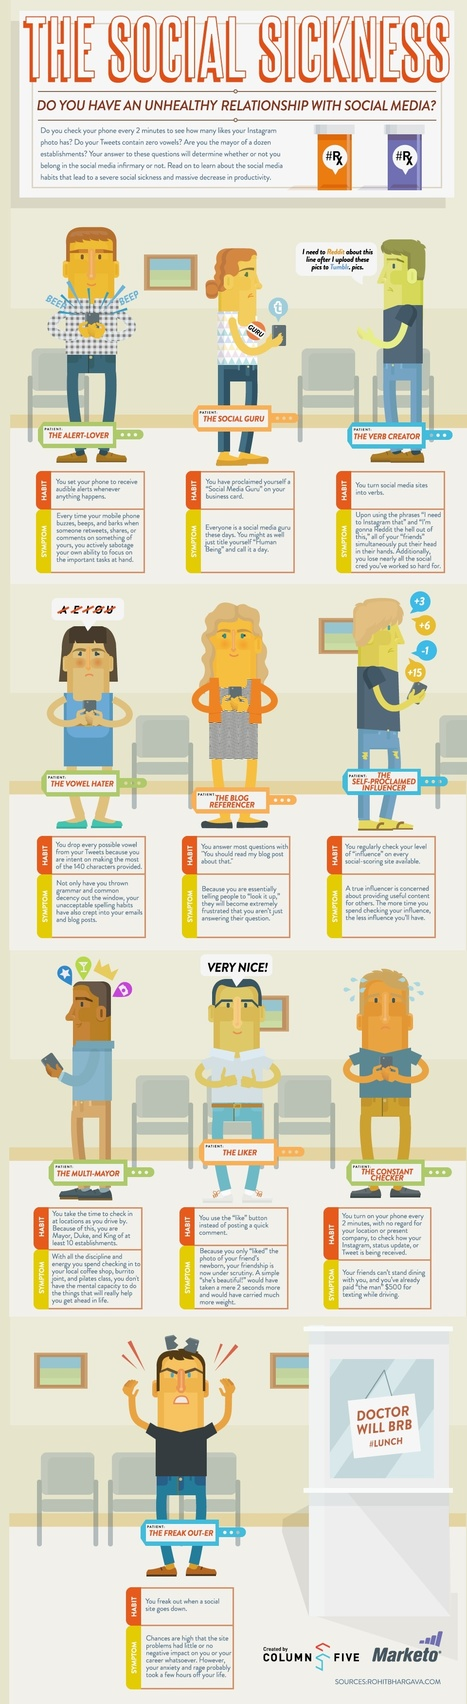 The 10 Types of Social Media Addicts [INFOGRAPHIC] | ten Hagen on Social Media | Scoop.it